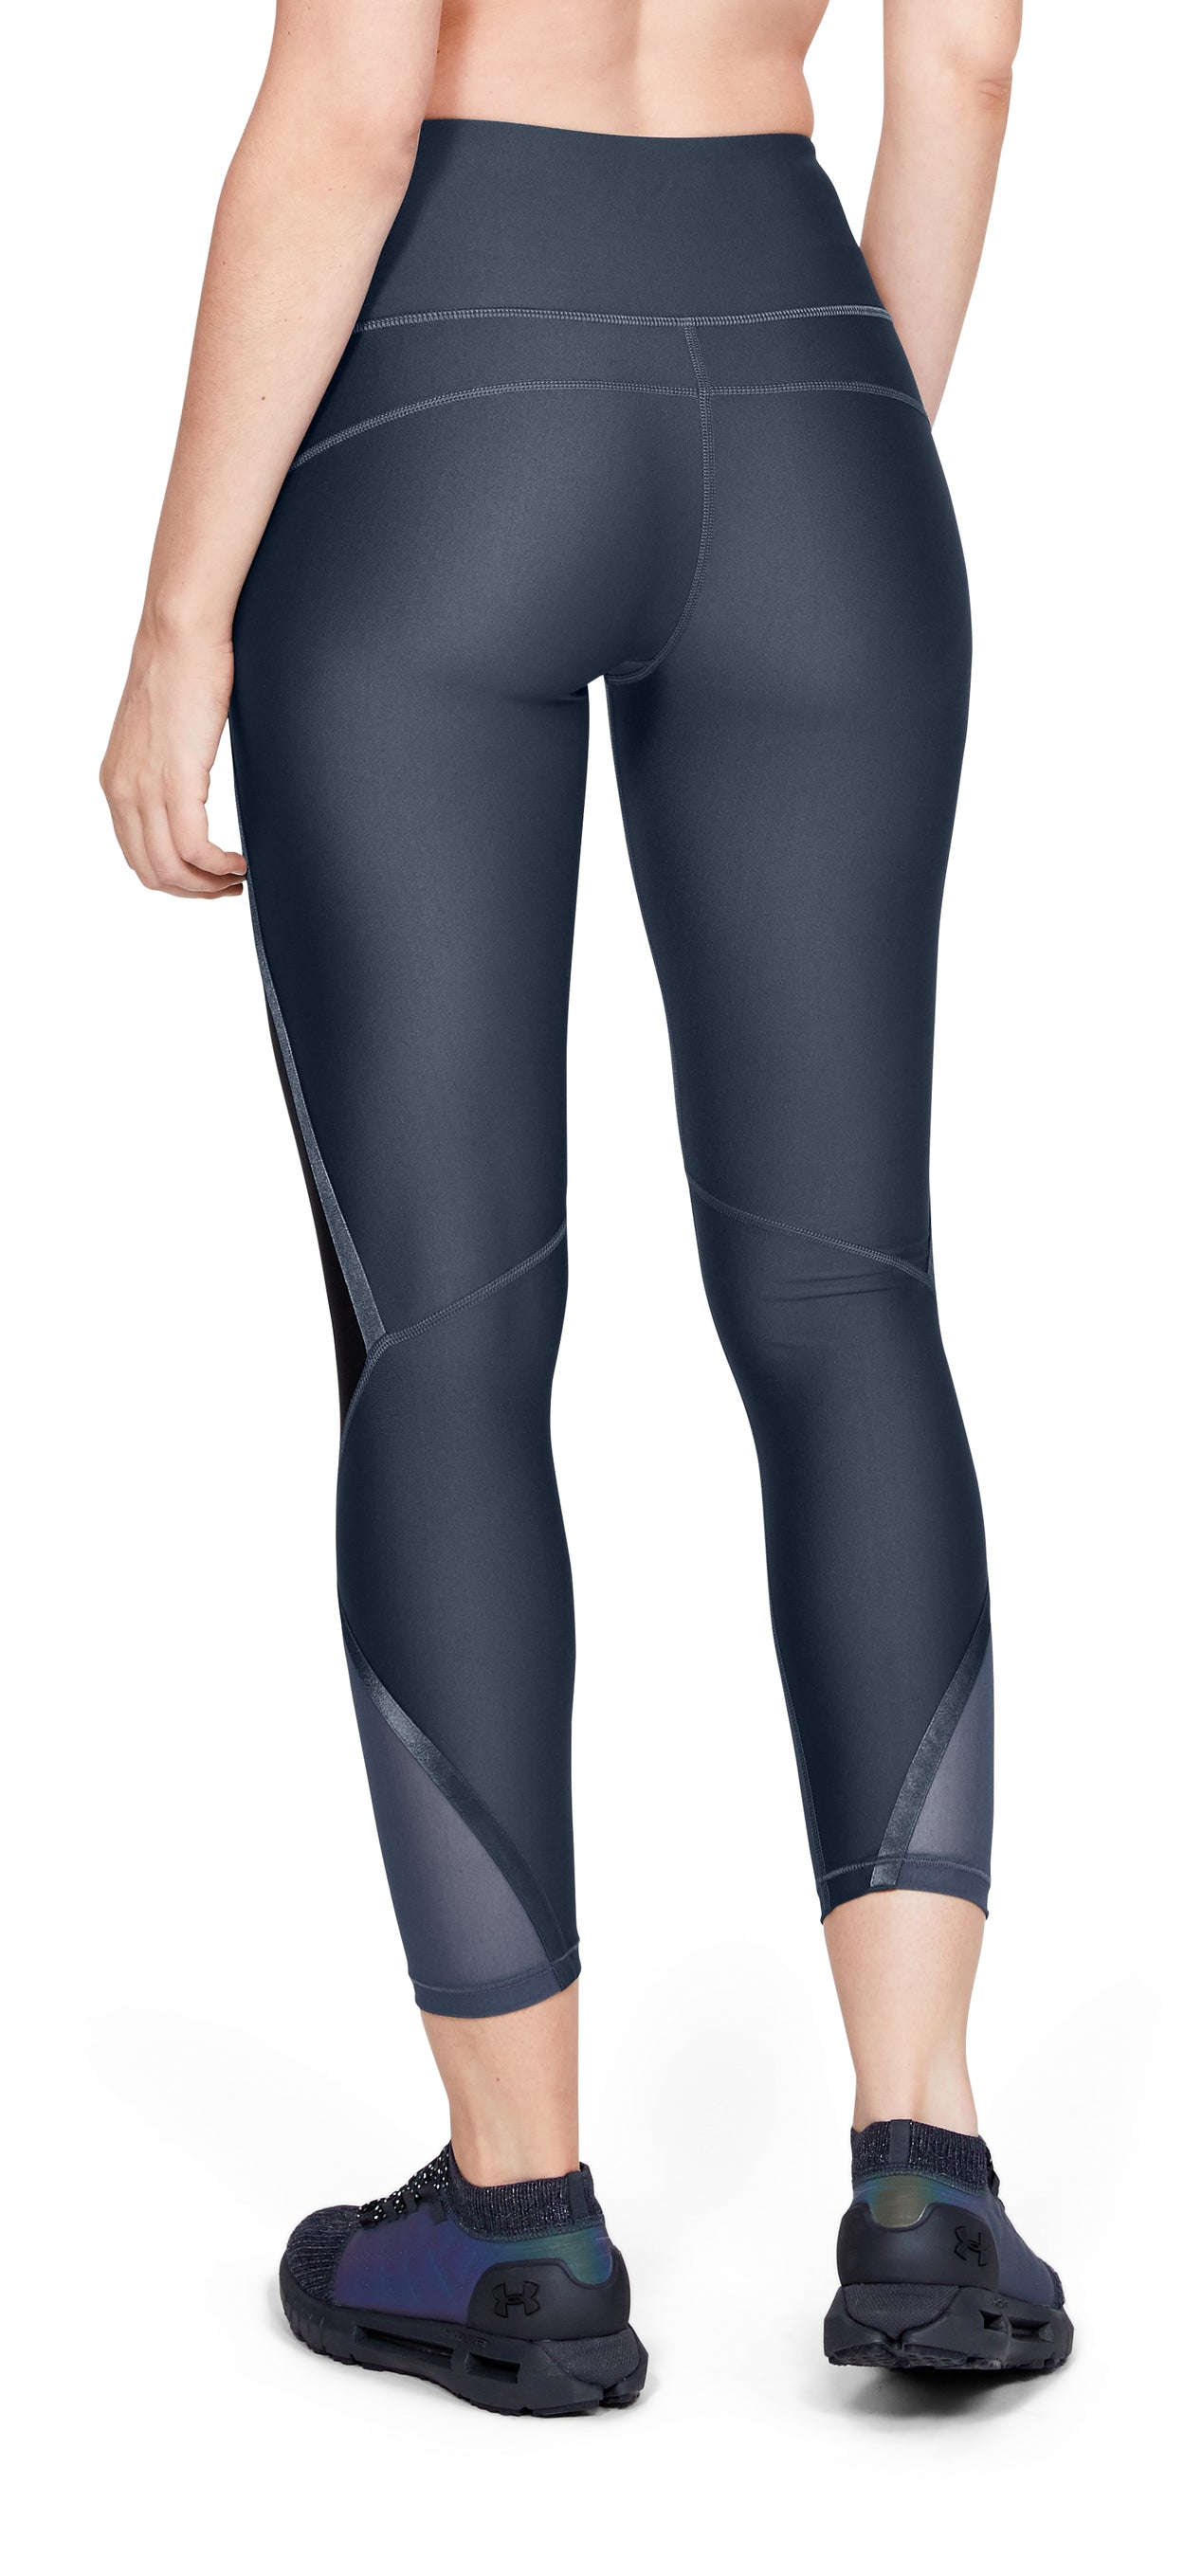 2efee30064f20e ... Metallic Silver · Under Armour HG Armour Shine Ankle Crop - Women's  thumb ...